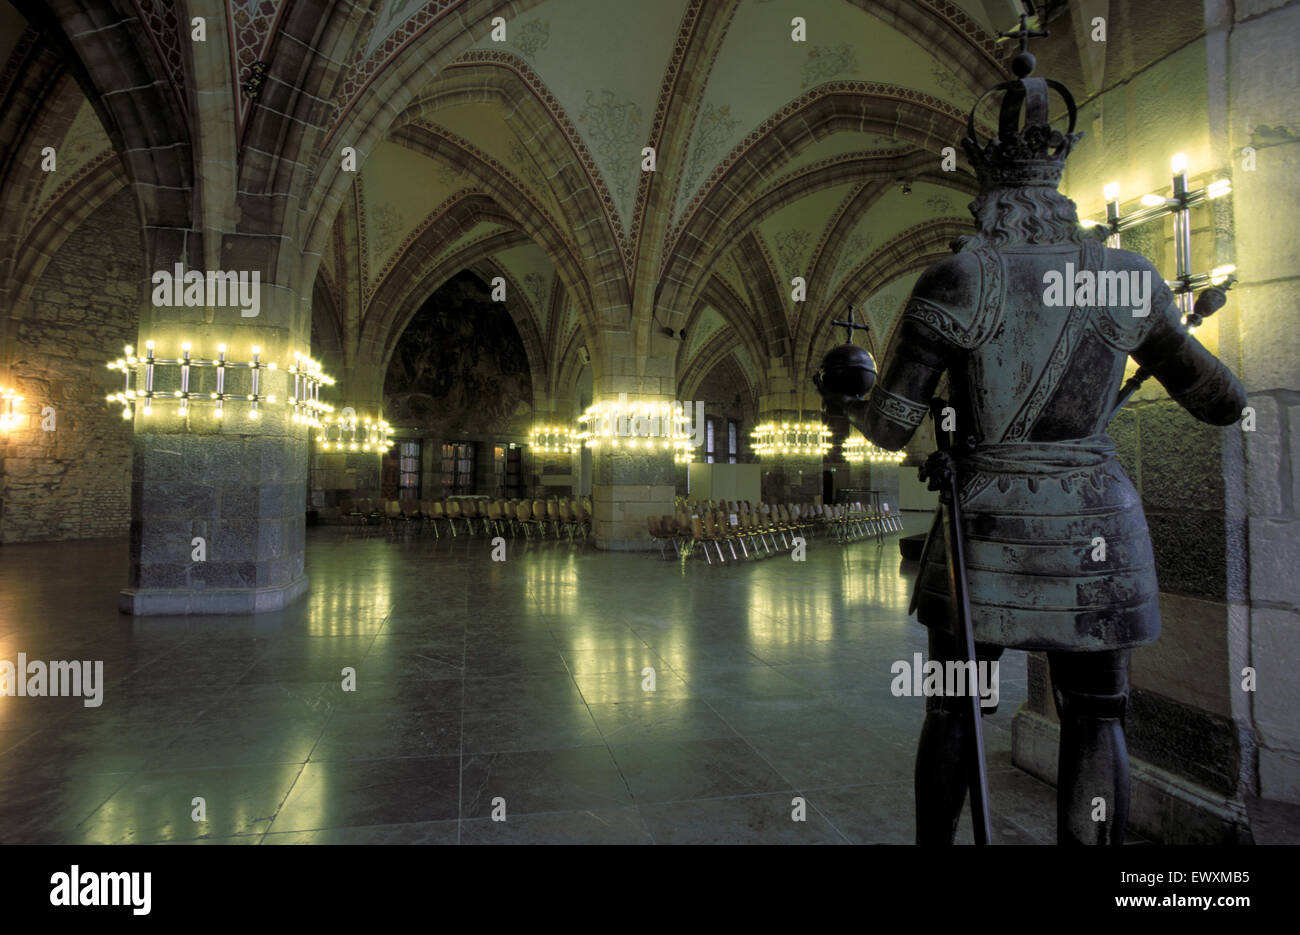 DEU, Germany, Aachen, the Coronation hall at the town hall at the market place, statue of Charlemagne.  DEU, Deutschland, Stock Photo